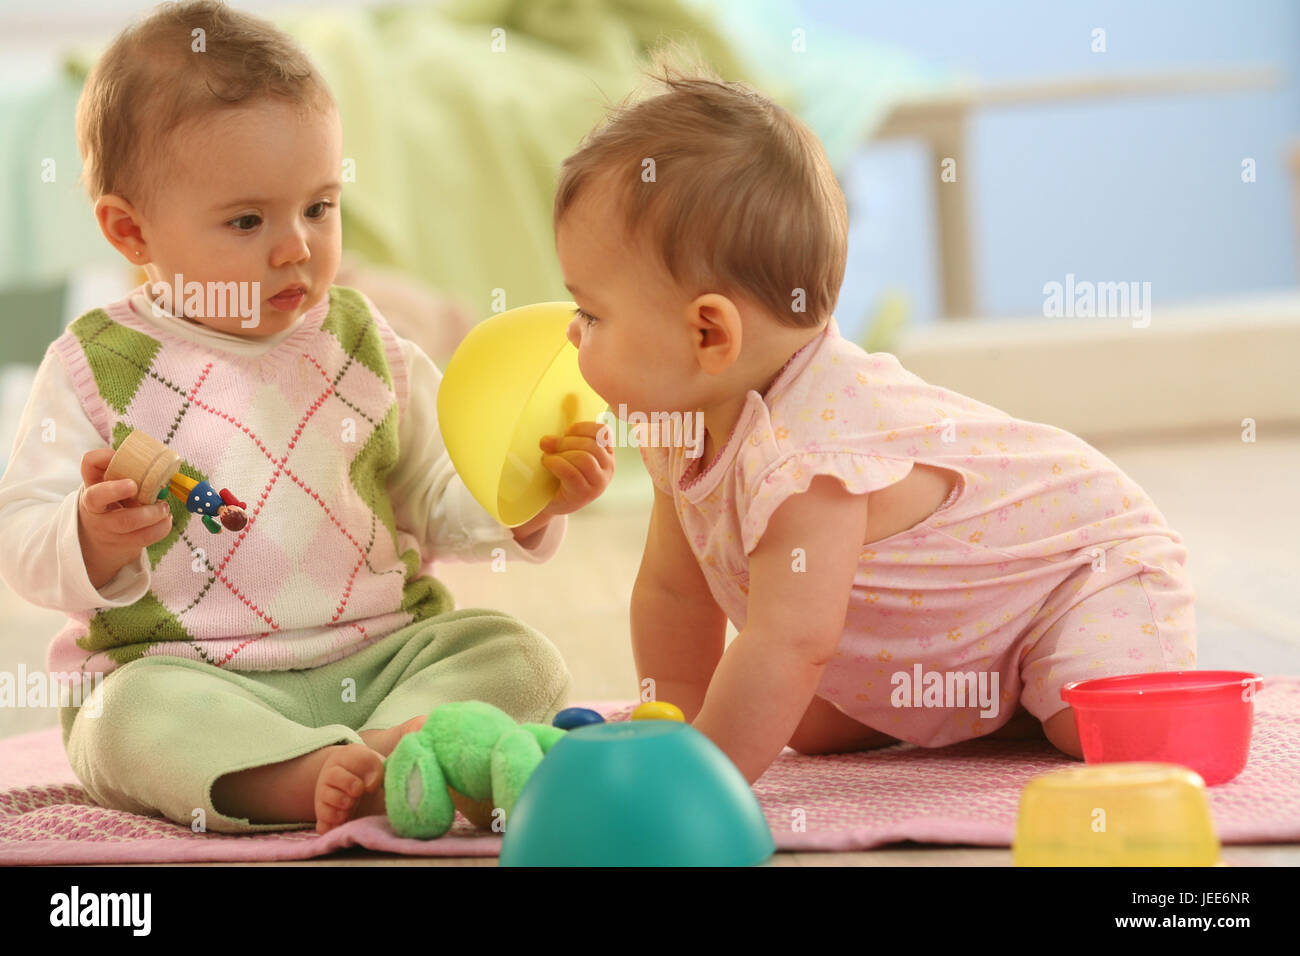 two babies, game group, social behaviour, toys, share, try out, - Stock Image